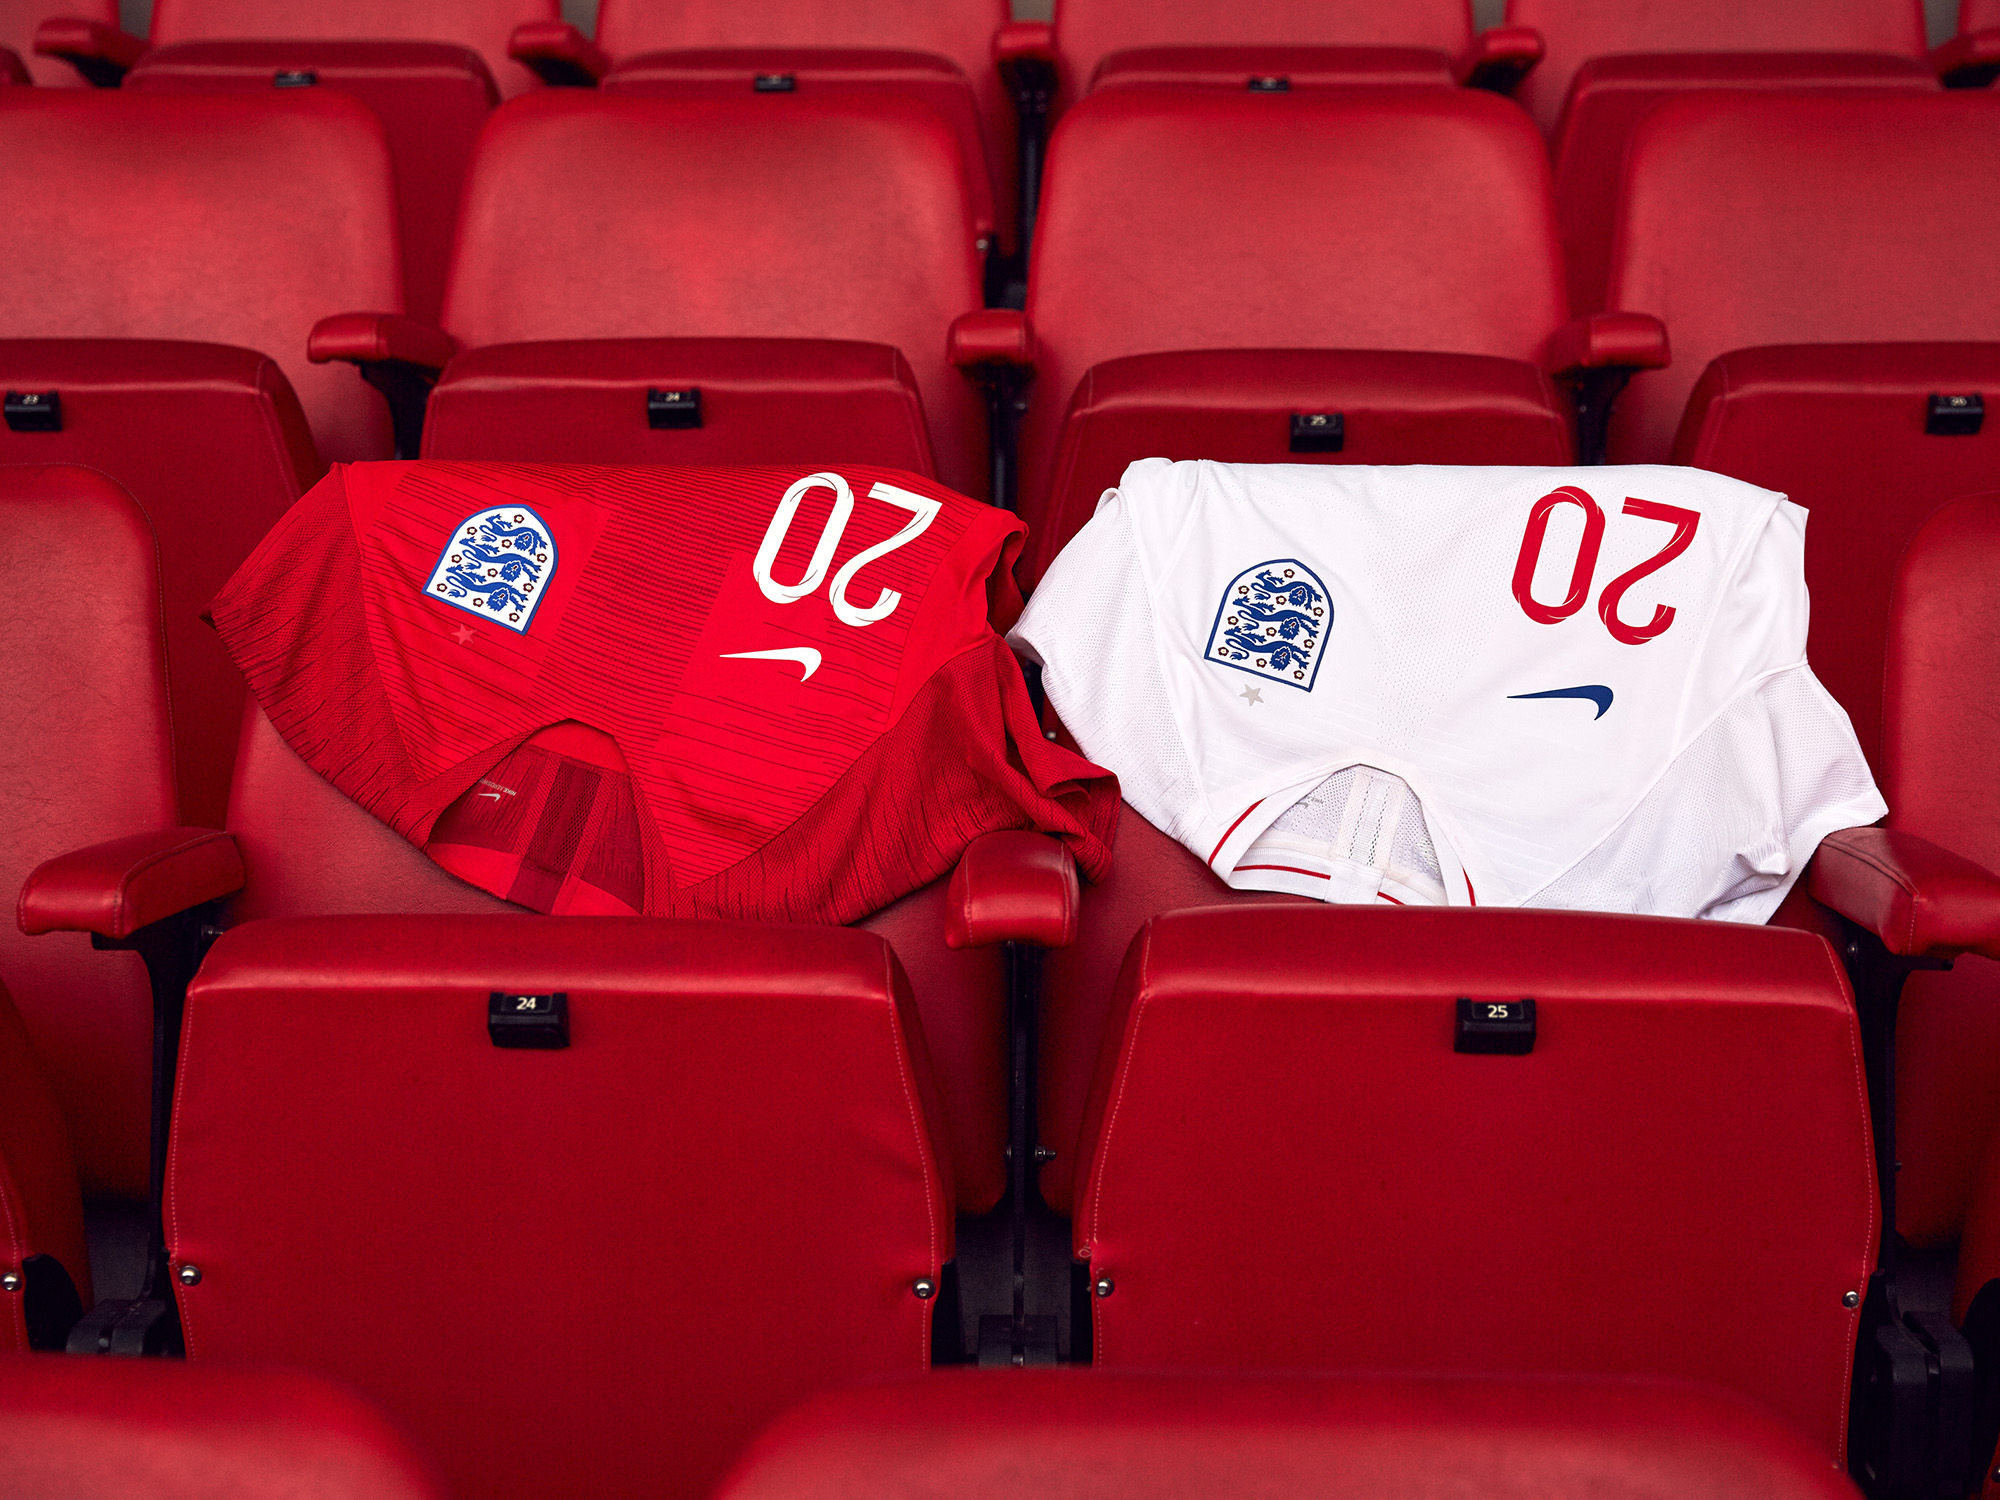 Nike-News-Football-Soccer-England-National-Team-Kit-7_77387